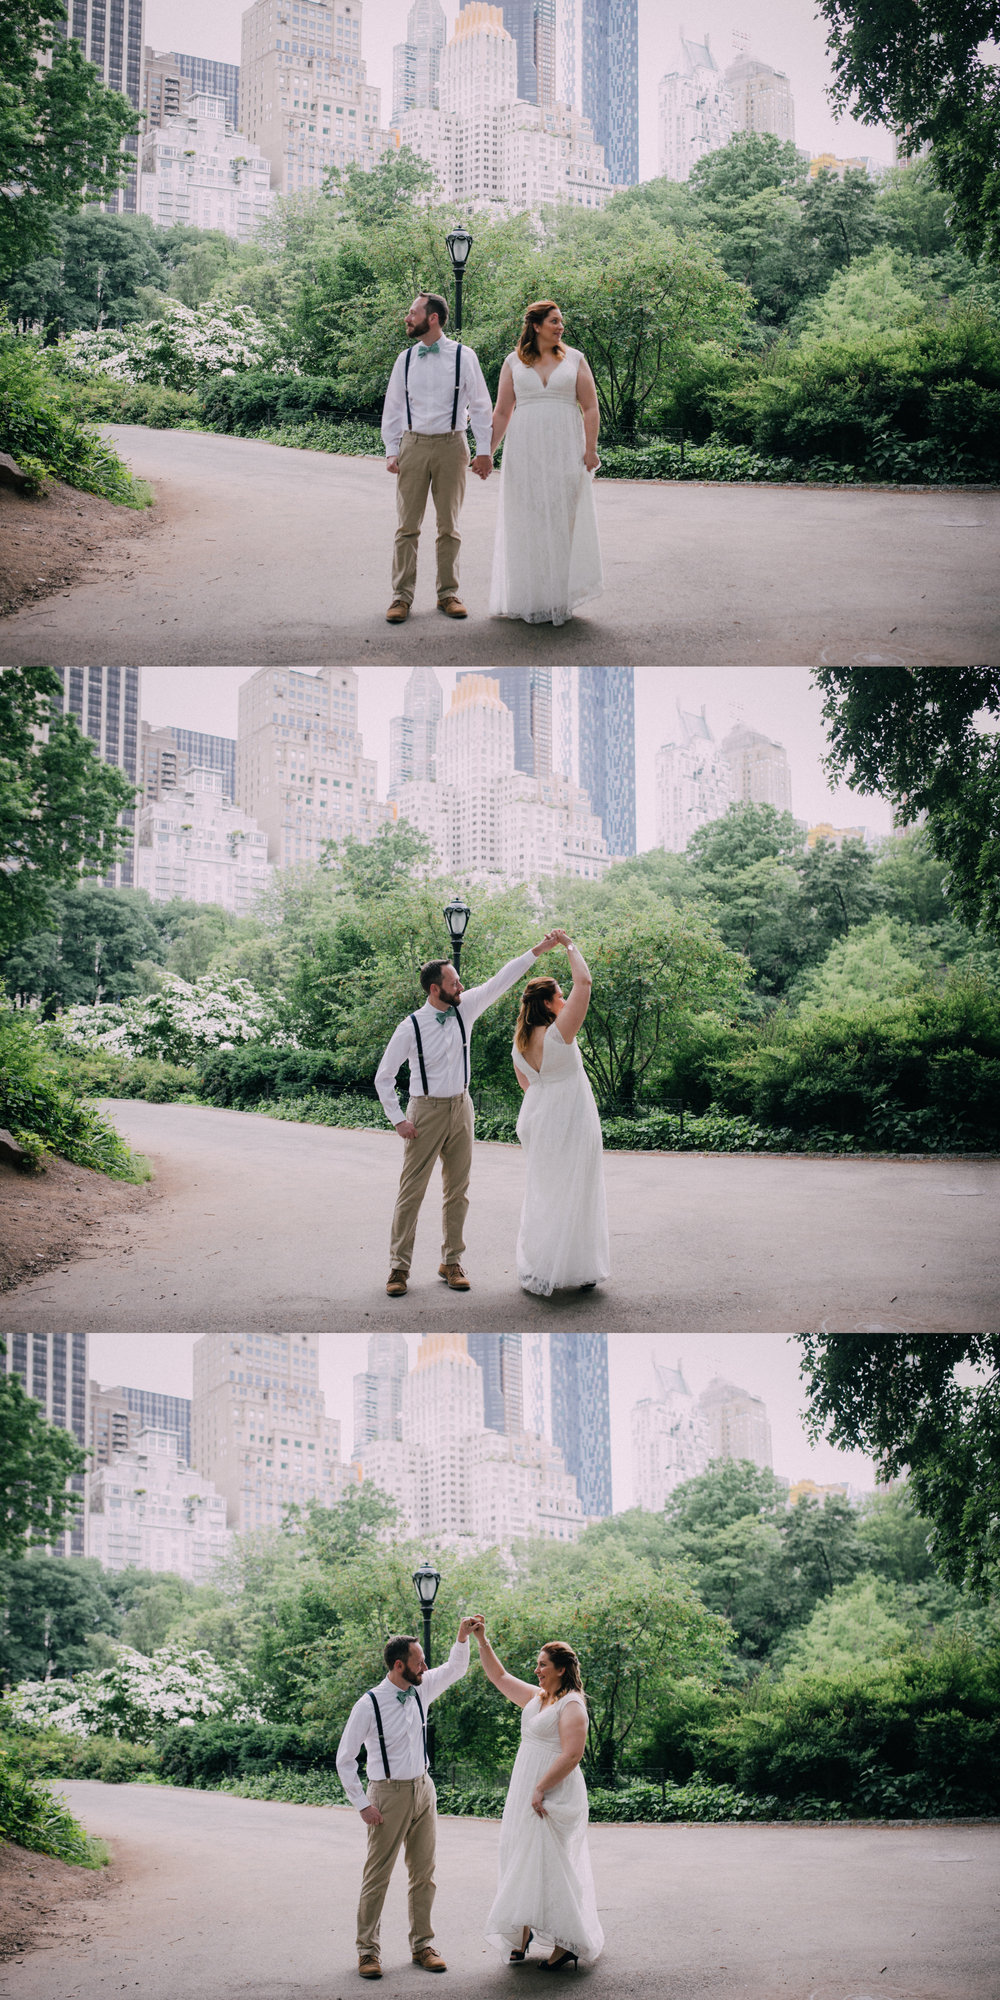 new york city elopement central park courthouse wedding photographer-25.jpg